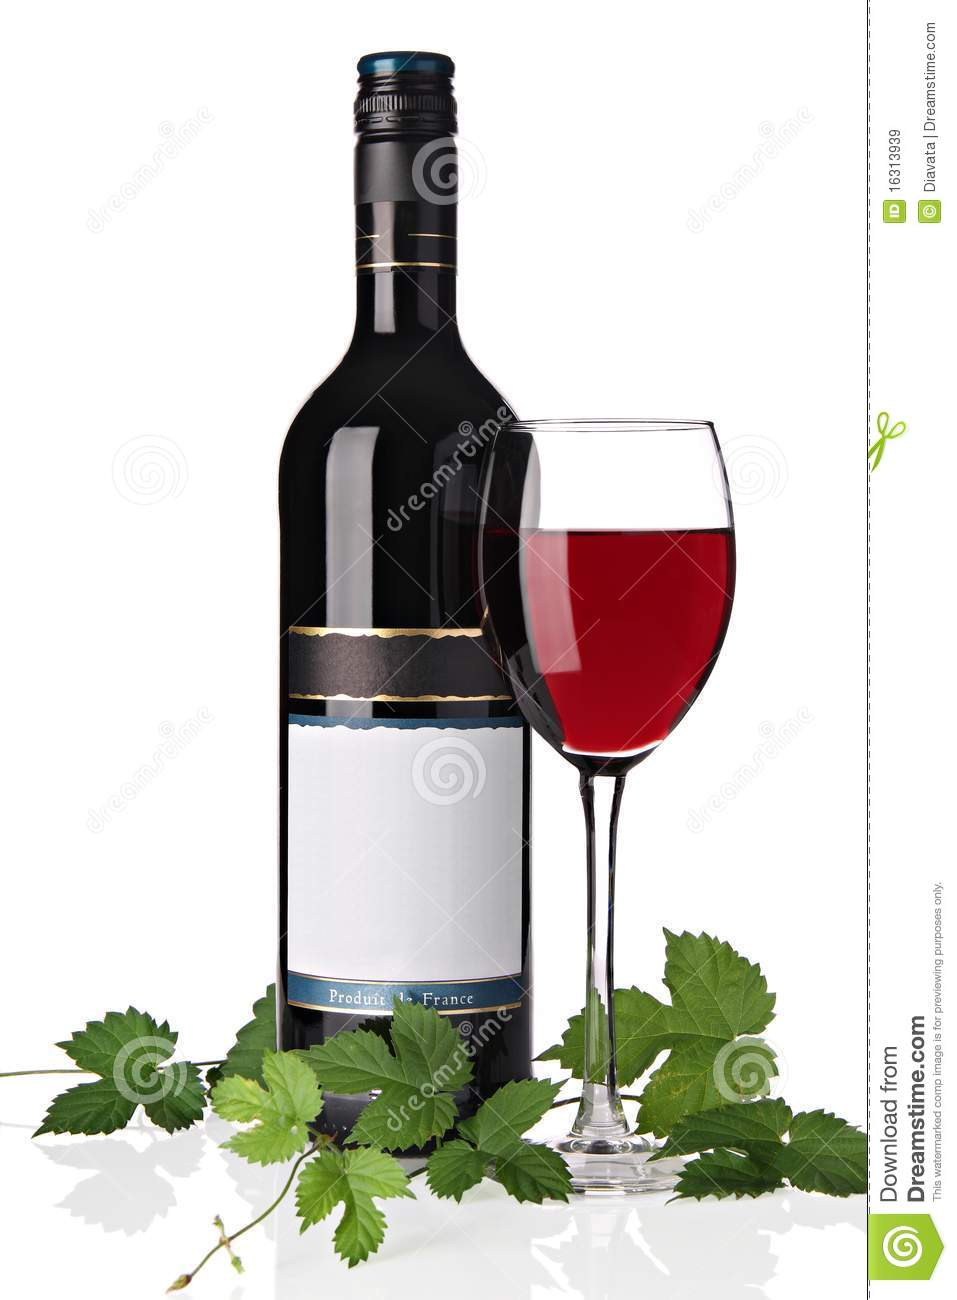 Bottle of red wine with wine glass